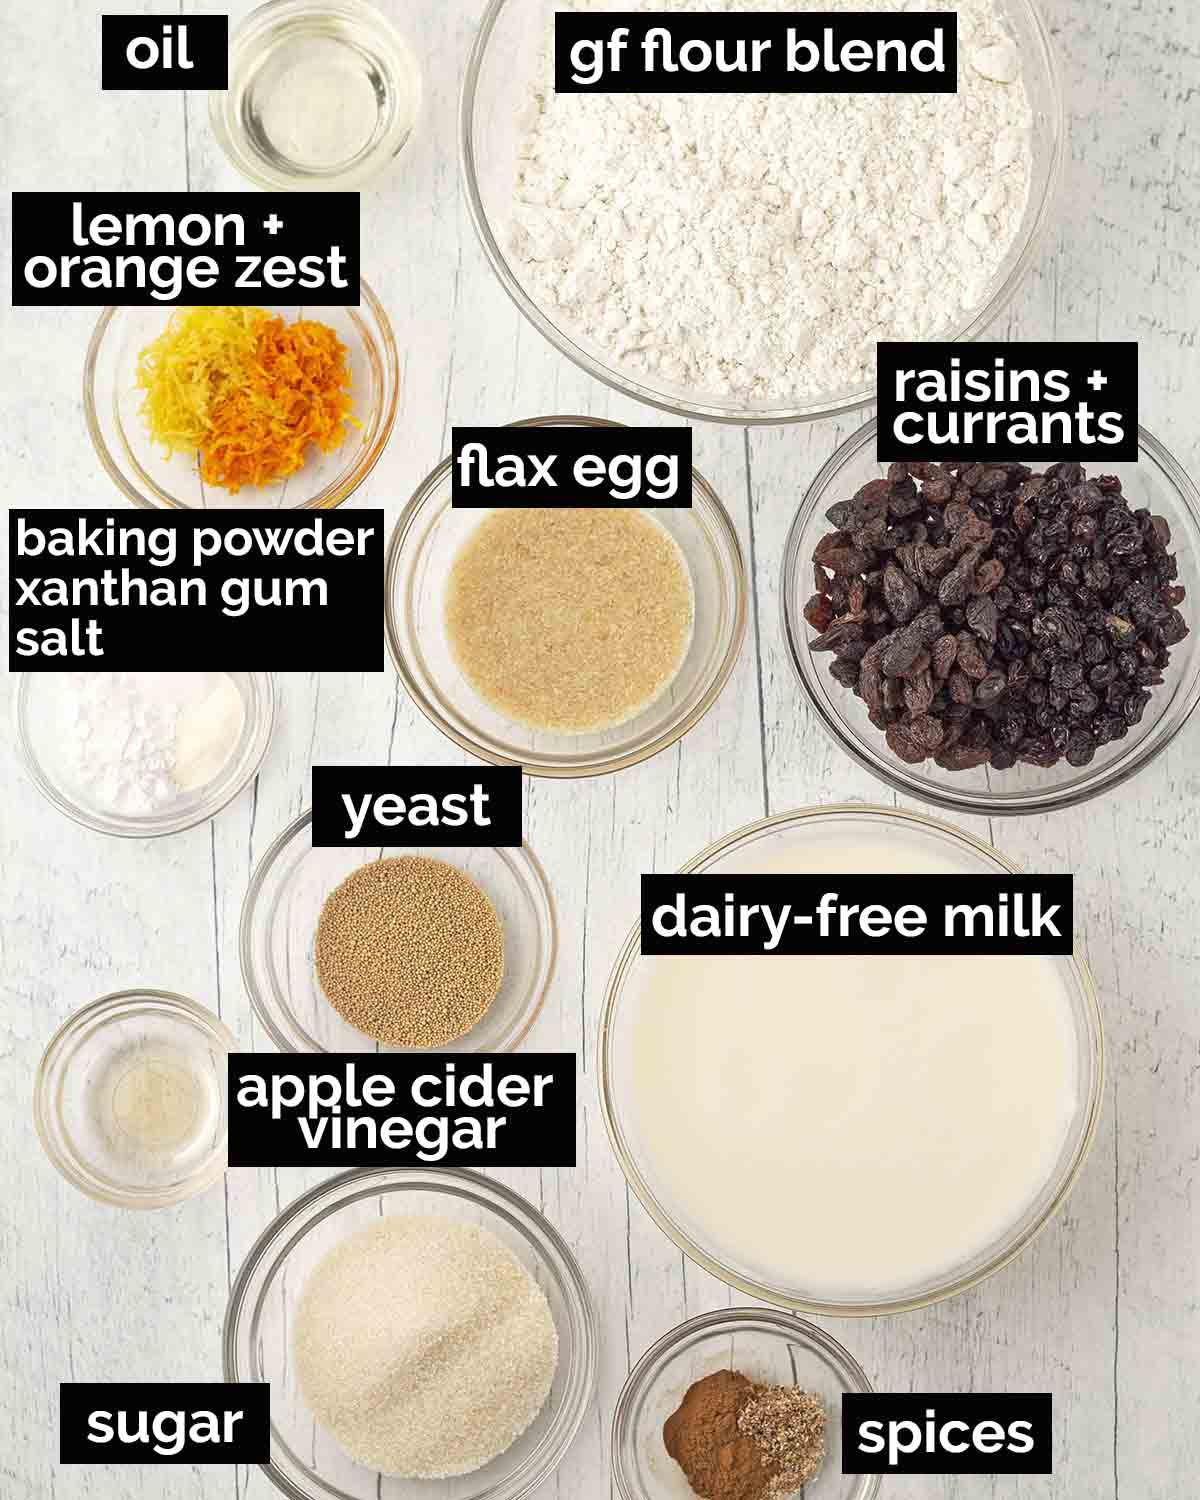 Overhead shot showing all the ingredients needed to make wheat free hot cross buns.